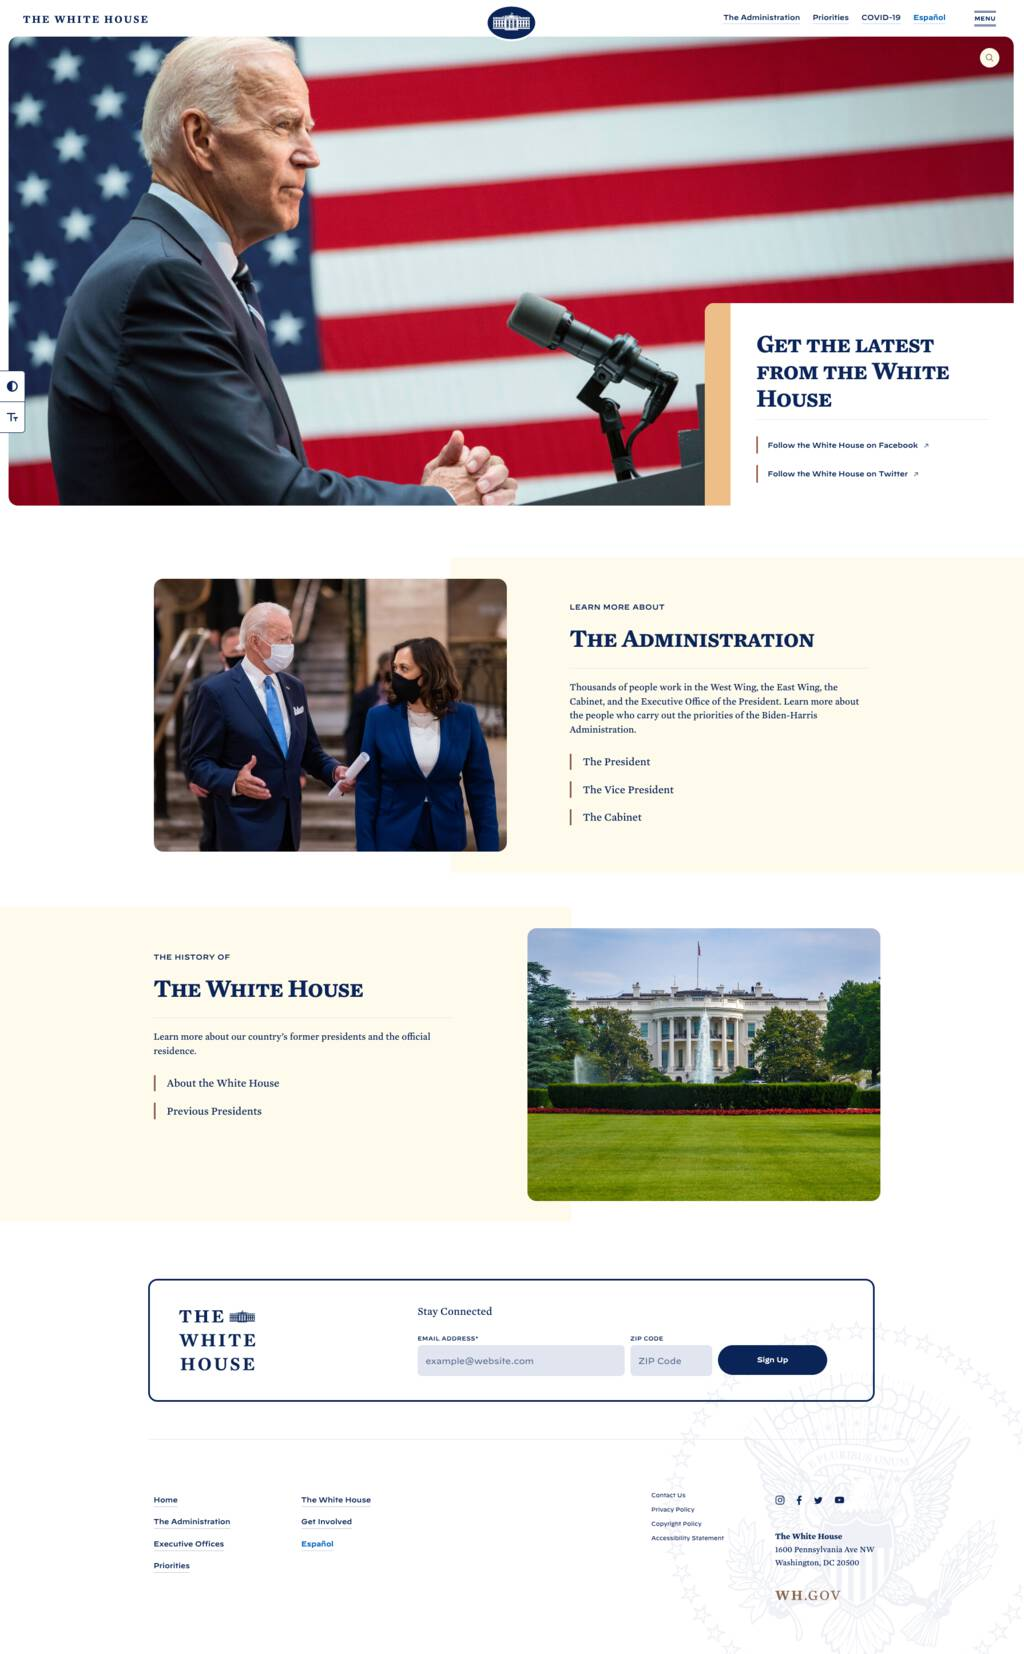 Screen shot of Whitehouse.gov on the afternoon of January 20, 2021